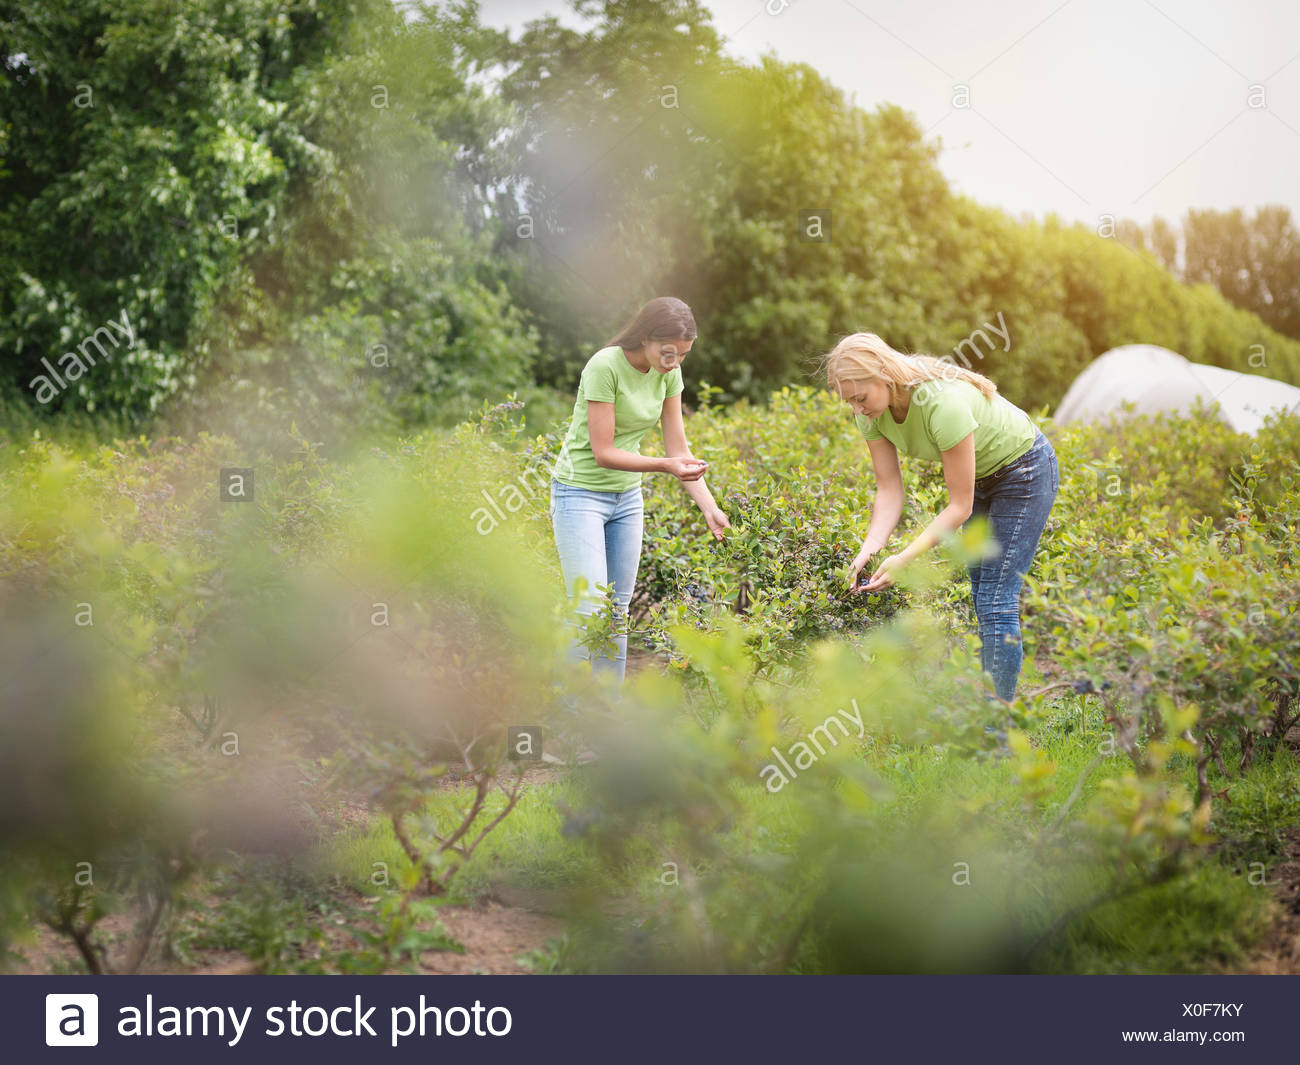 Workers picking blueberries on fruit farm - Stock Image